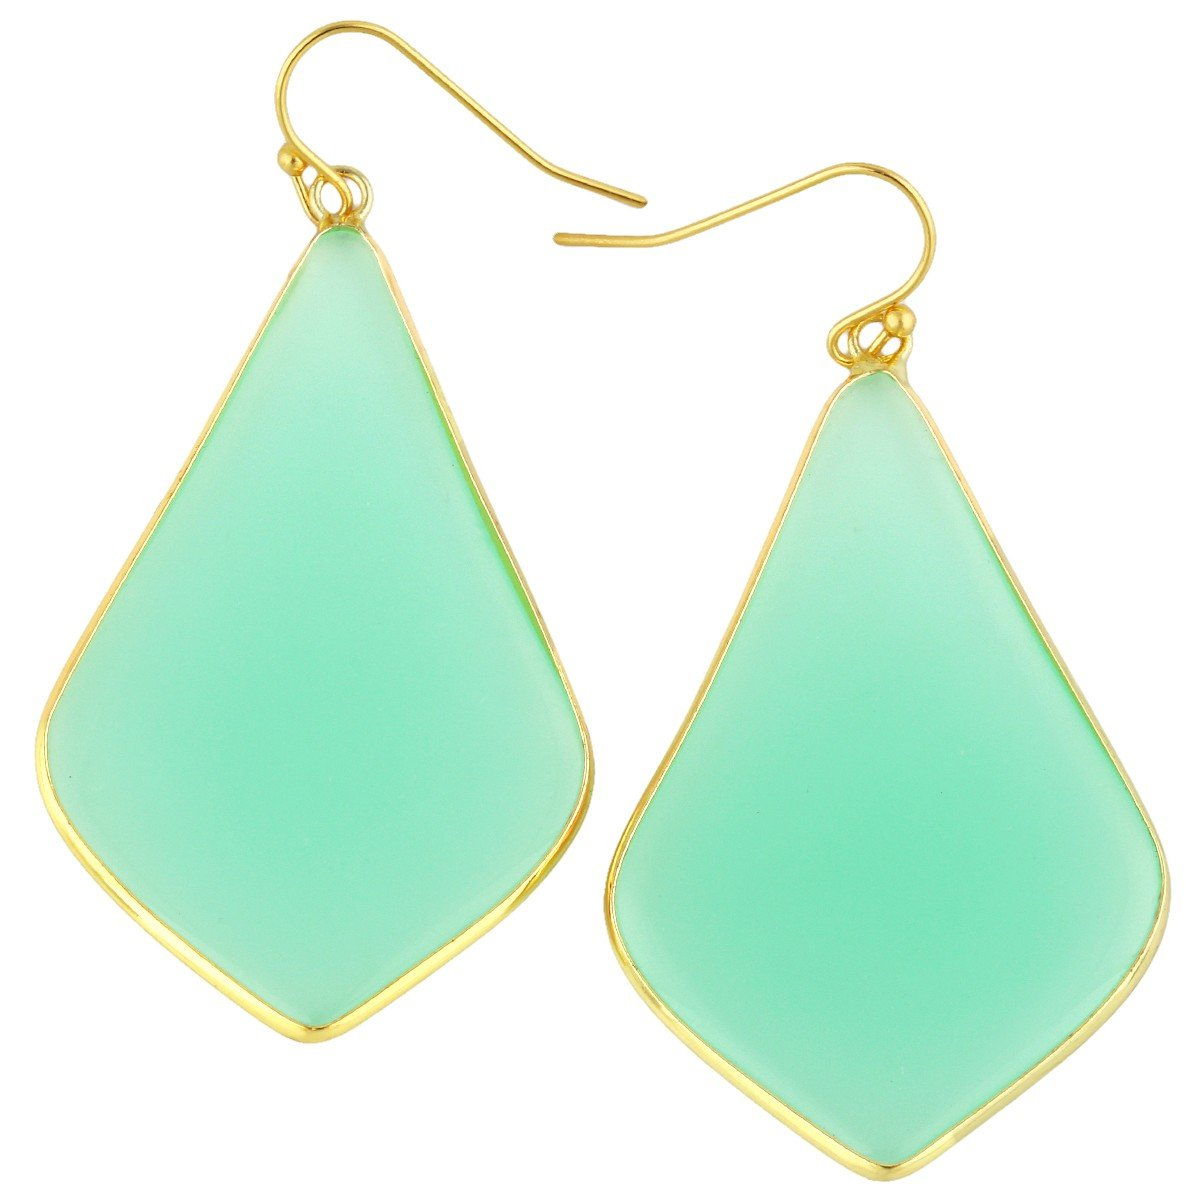 rockcloud Crystal Stone Dangle Earrings Gold Plated, Rhombus Shape, Green Crystal Glass by rockcloud